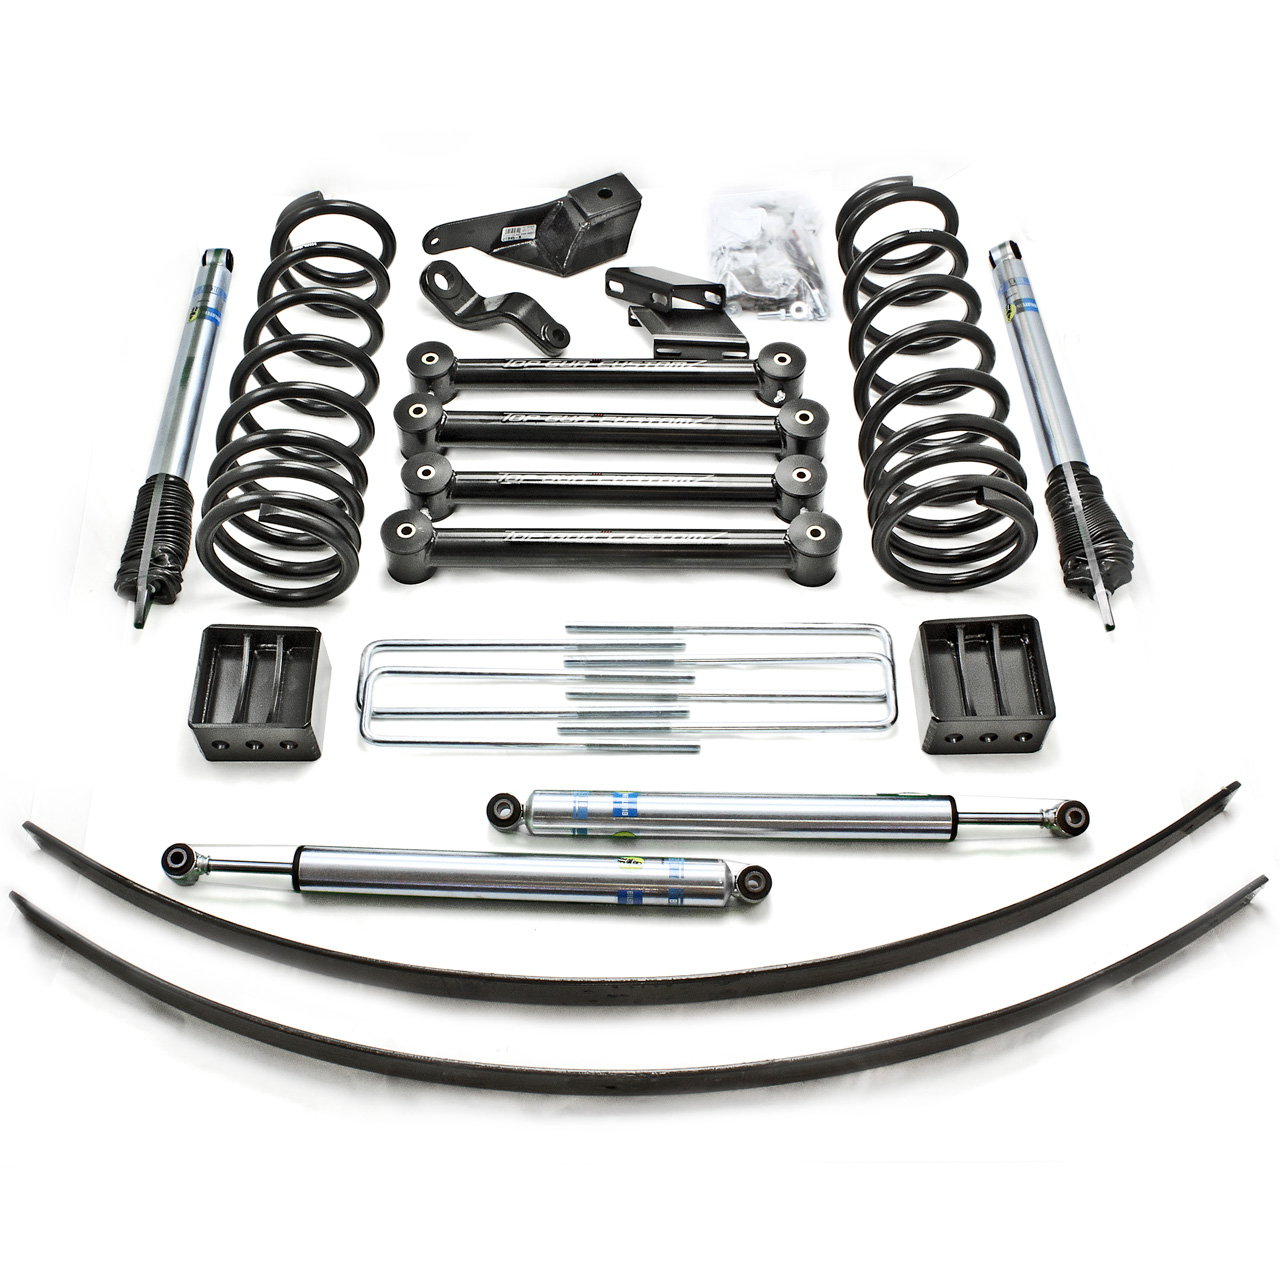 Dodge Lift Kit For 2002 Dodge Ram 3500 Truck Lift Kits